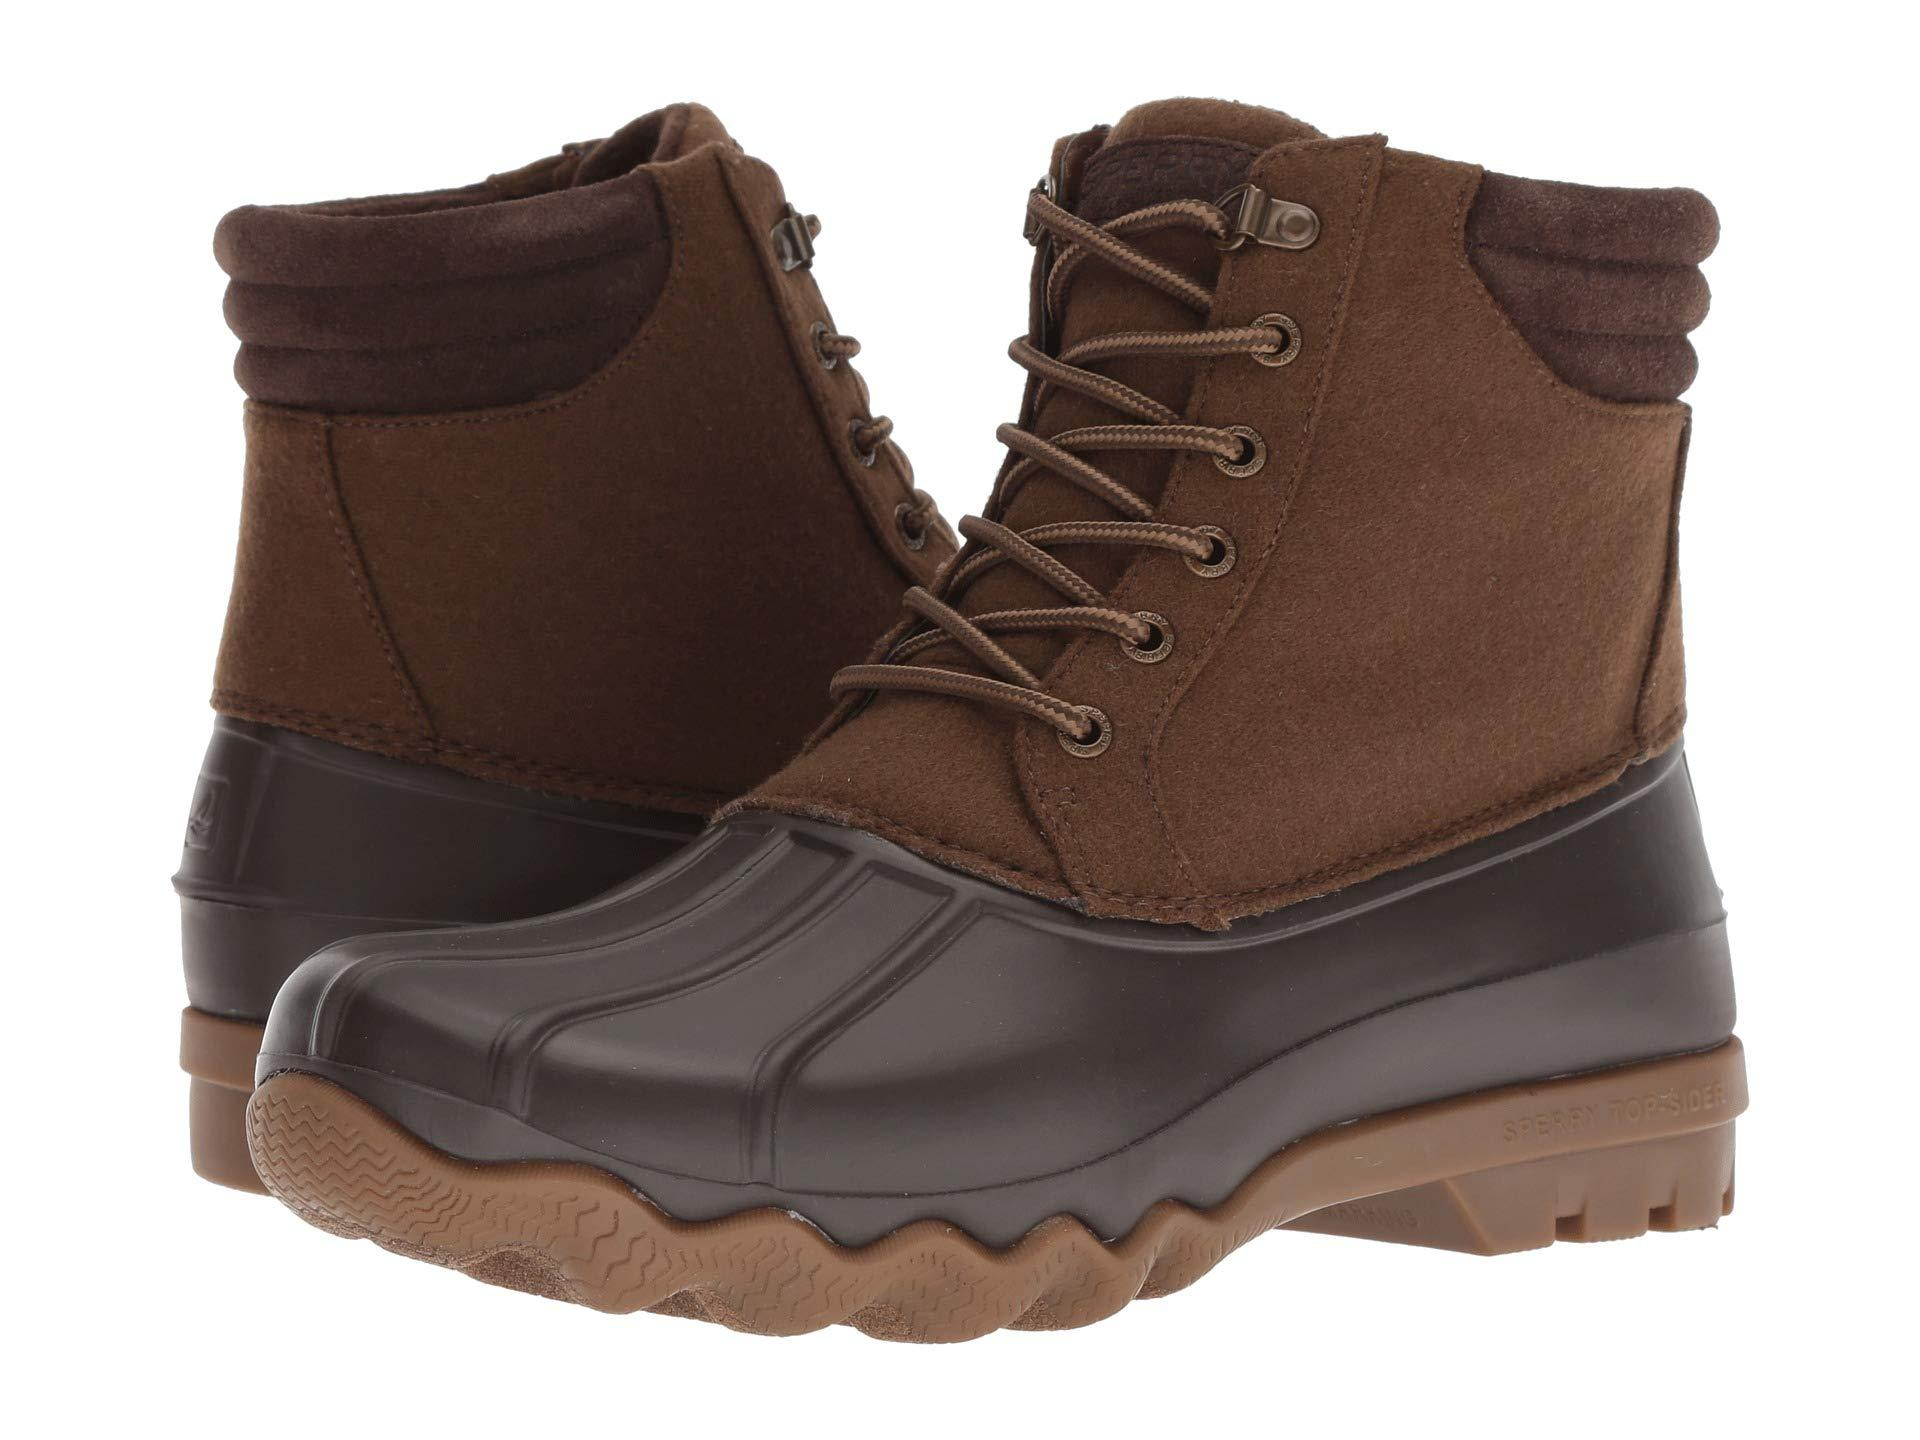 0fe1159f1 Lyst - Sperry Top-Sider Avenue Duck Wool in Brown for Men - Save 60%